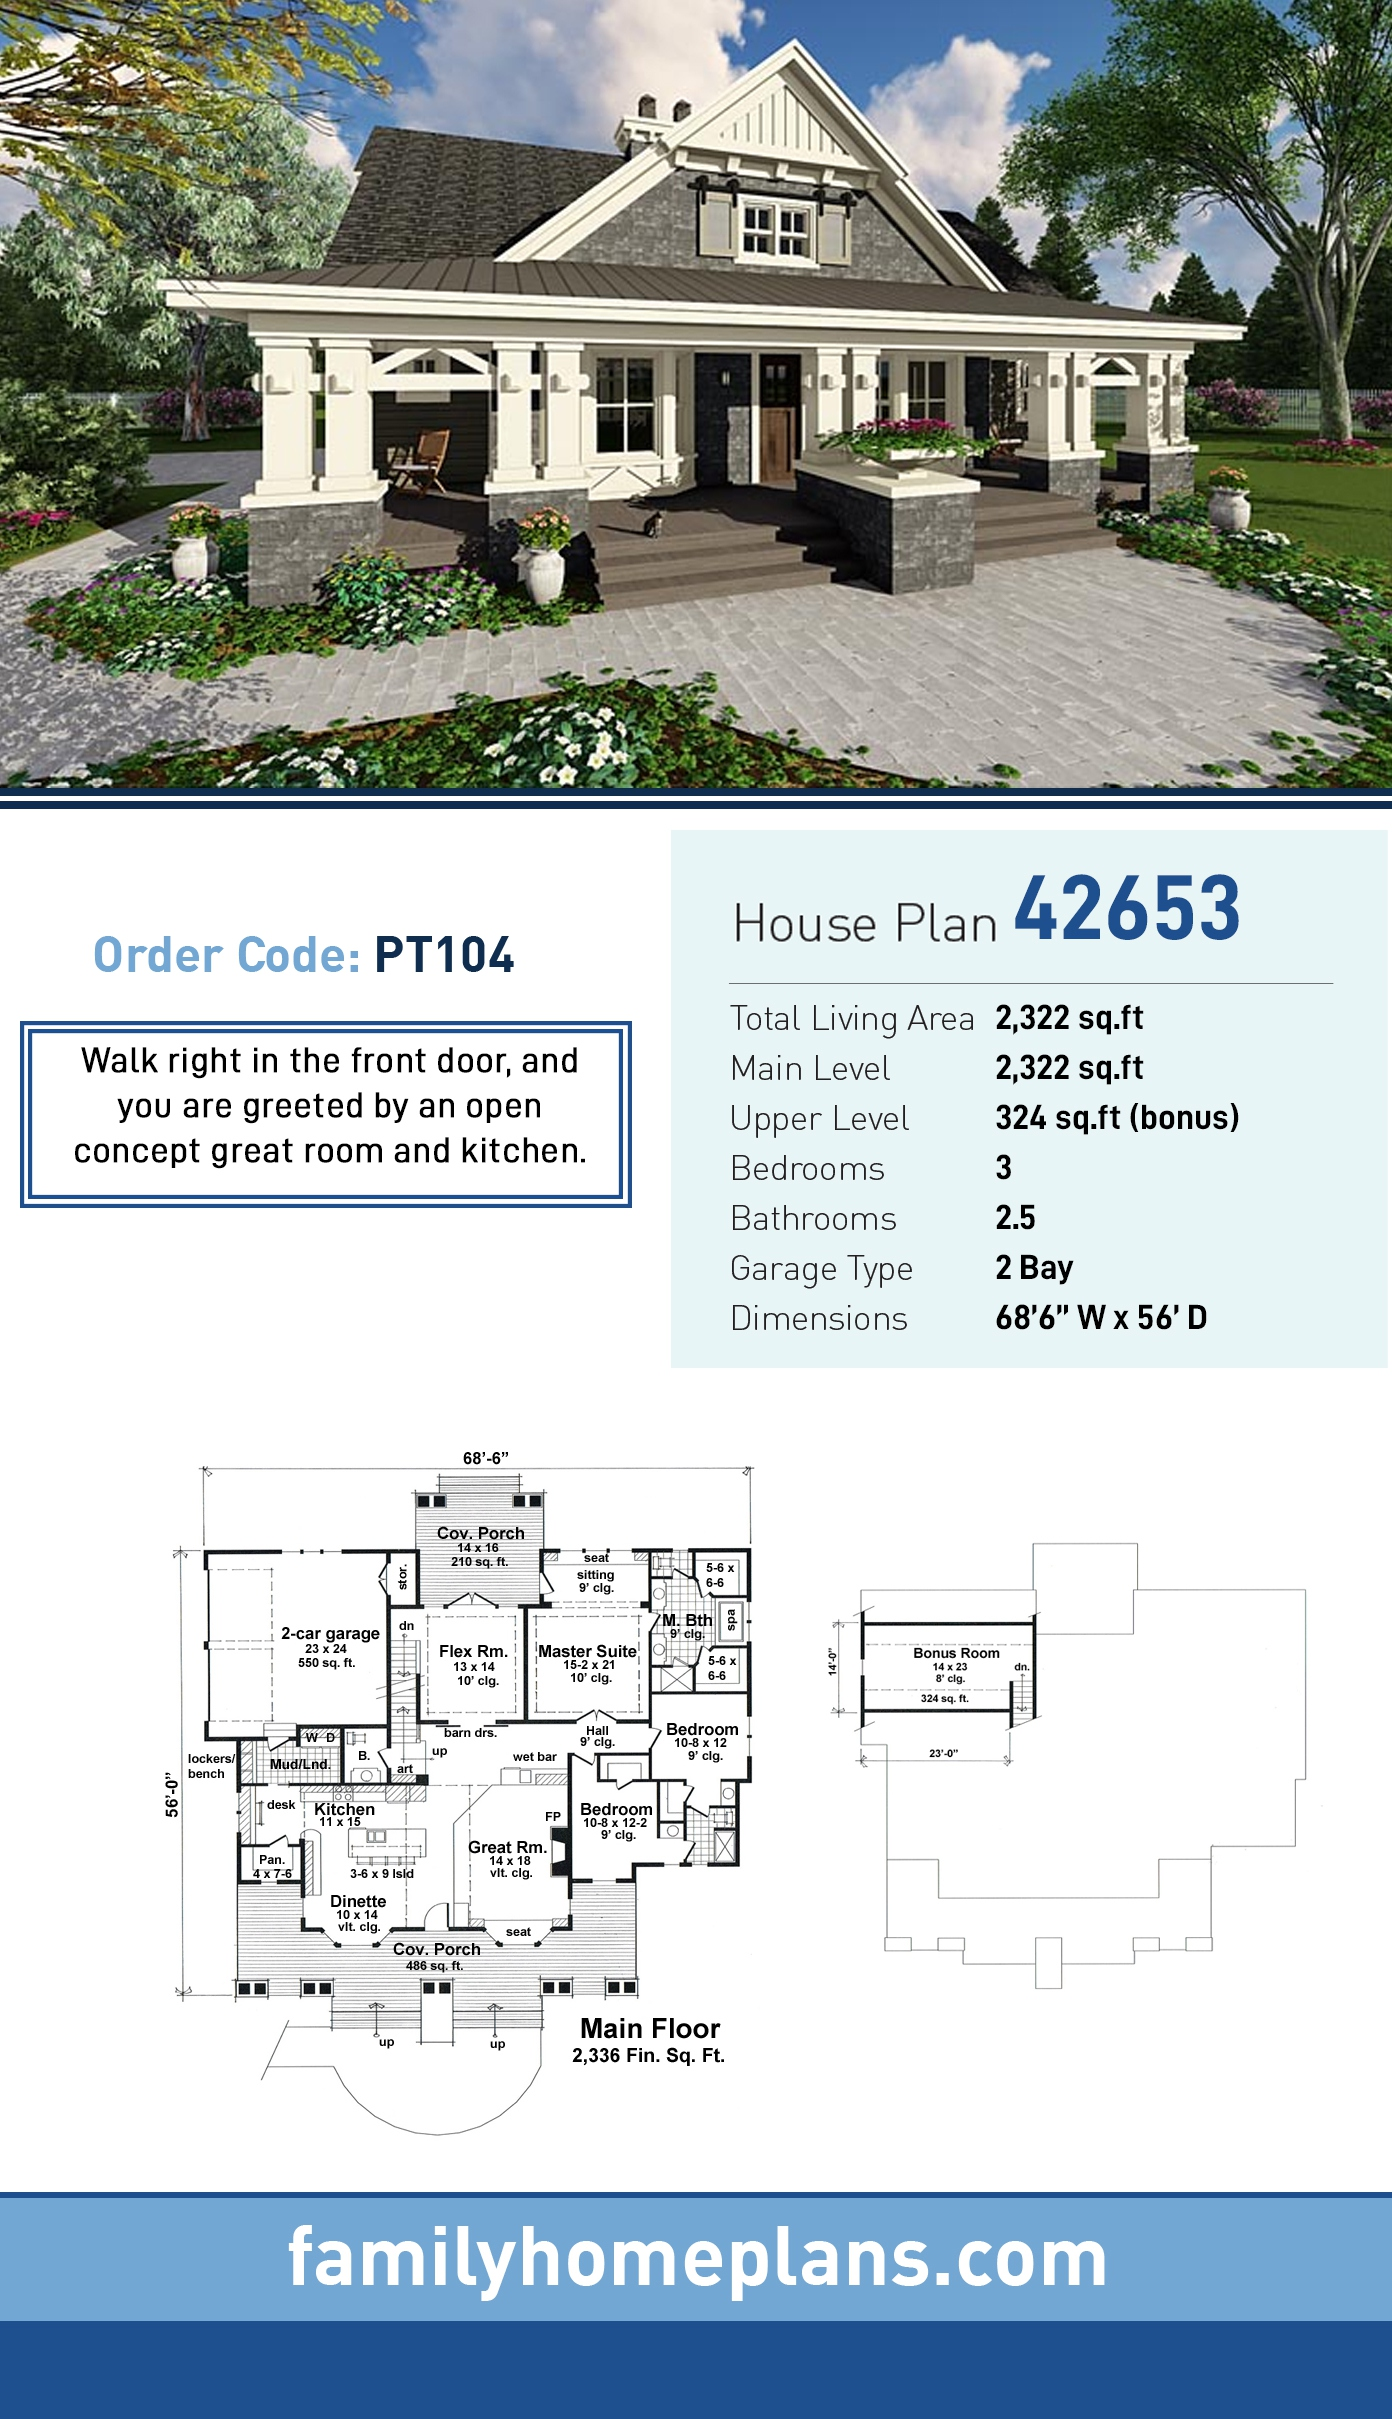 Craftsman House Plan 42653 with 3 Beds, 3 Baths, 2 Car Garage